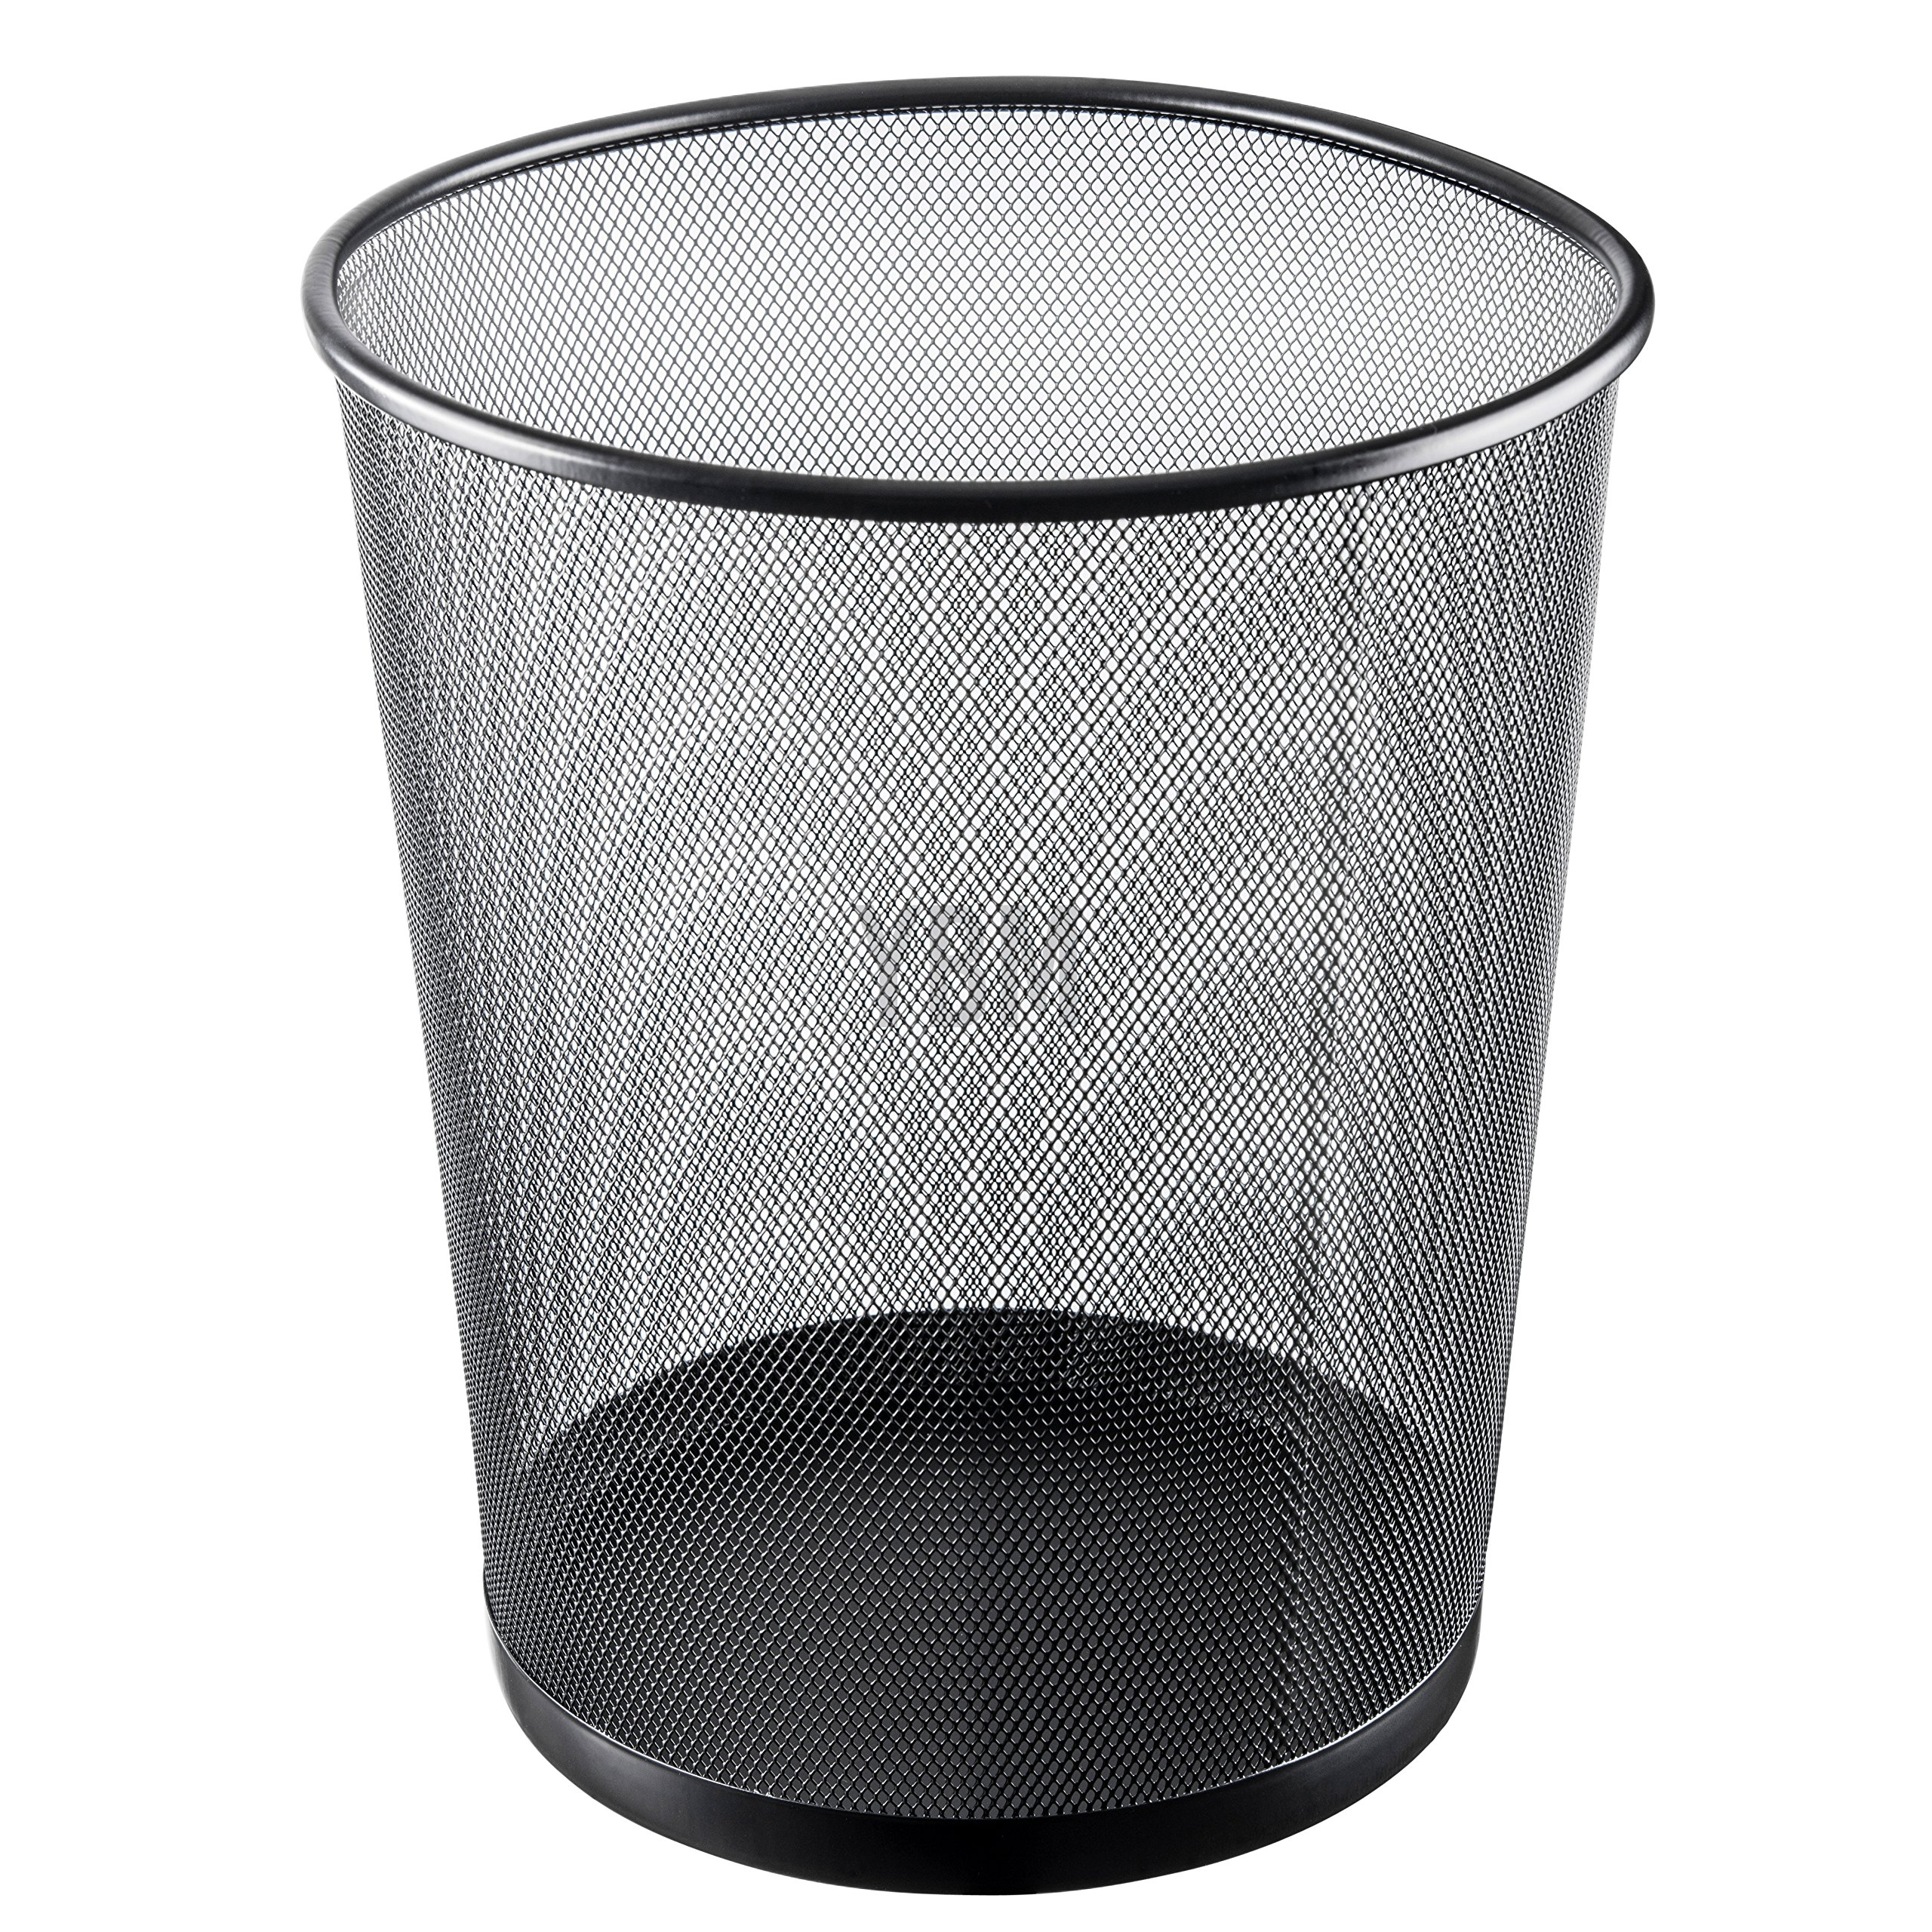 Ybmhome Steel Mesh Round Open Top Waste Basket Bin Trash Can for Office Home 2484 (1, Black)